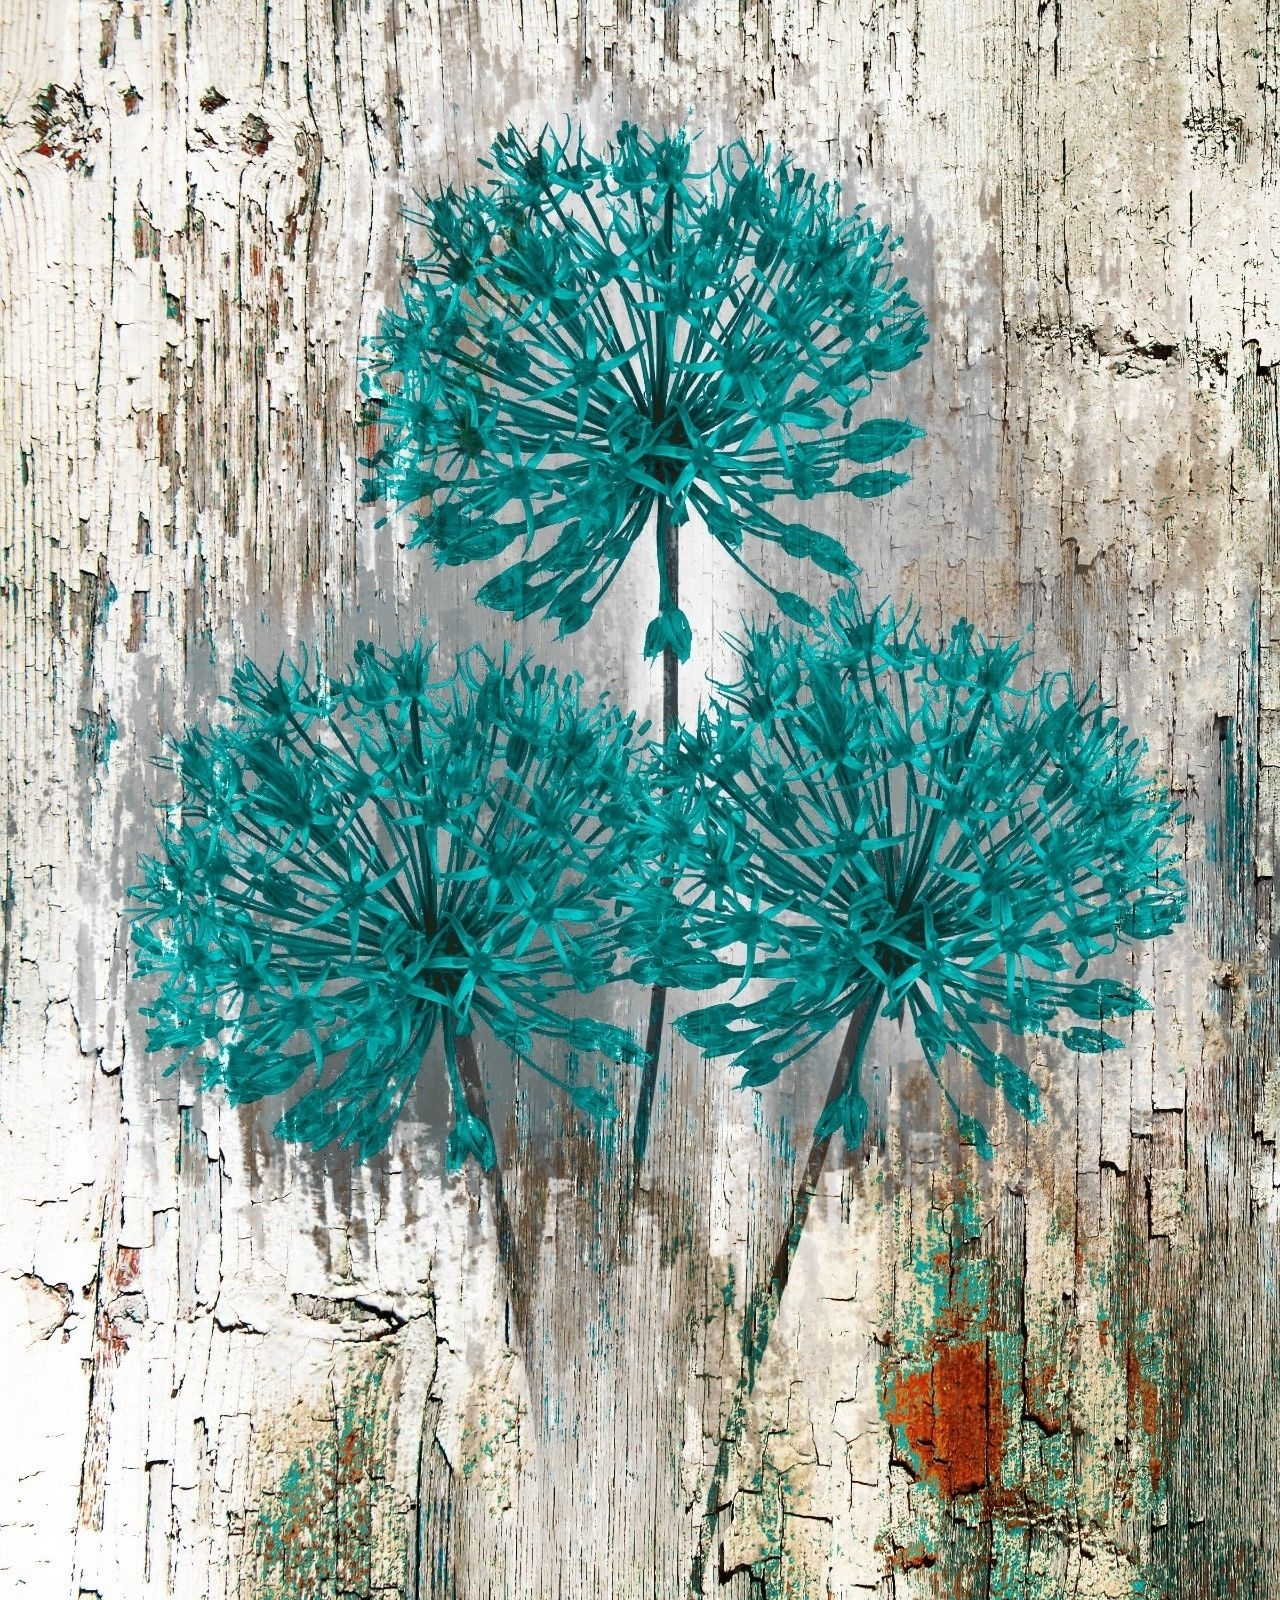 Teal Brown Rustic Distressed Flower Wall Art Home Decor Matted With Best And Newest Teal Wall Art (View 14 of 15)